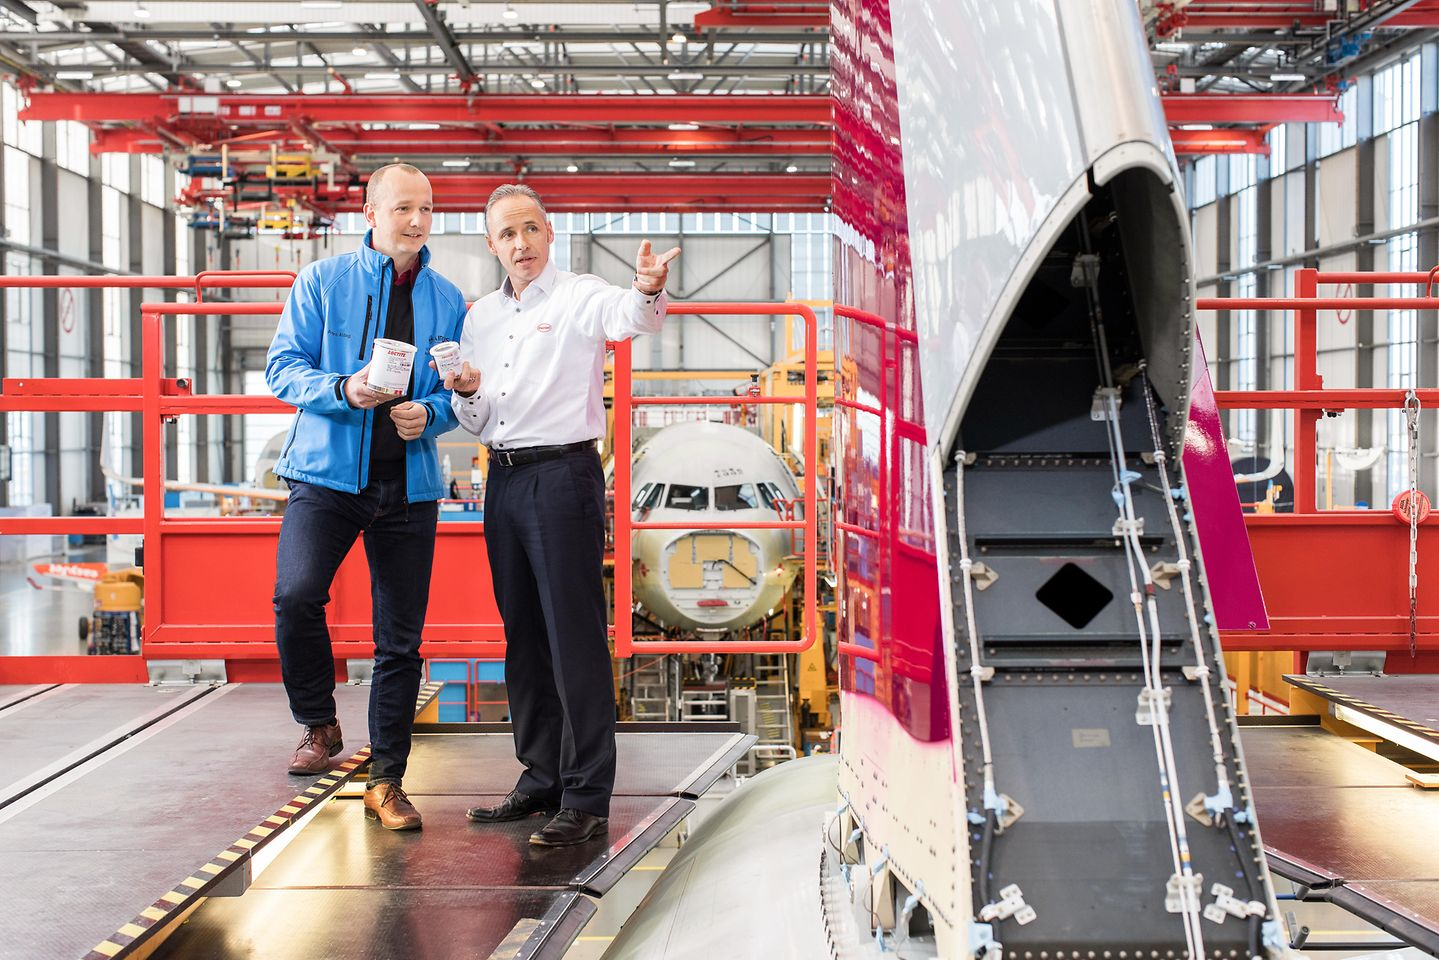 Airbus assembly hall in Hamburg: Guido Adolph from Henkel (right) discussing with Andre Aldag